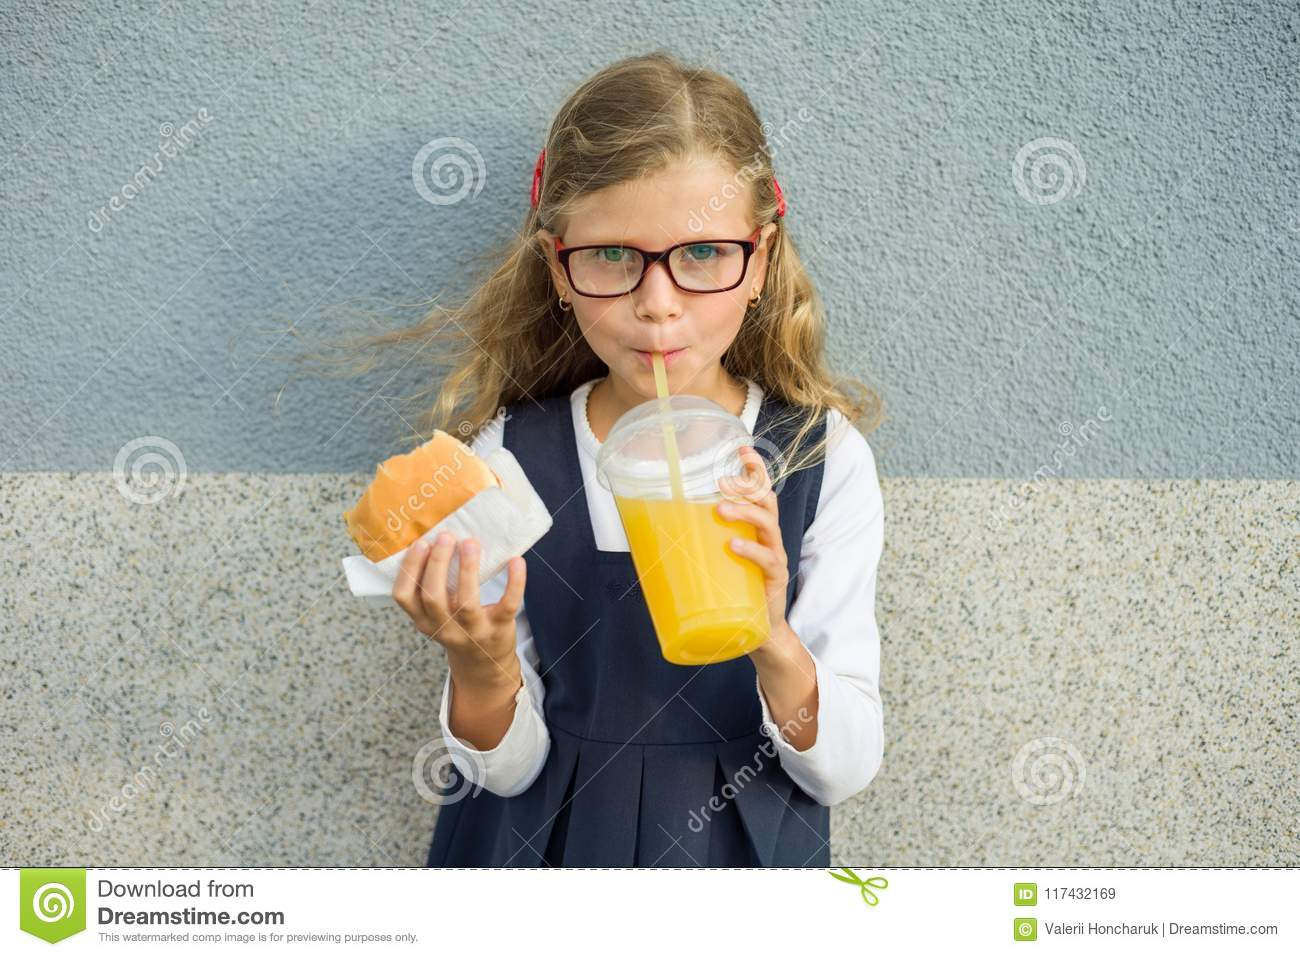 Outdoor portrait of child girl with blond curly hair with glasses. Girl eats sandwich and drinks orange juice.